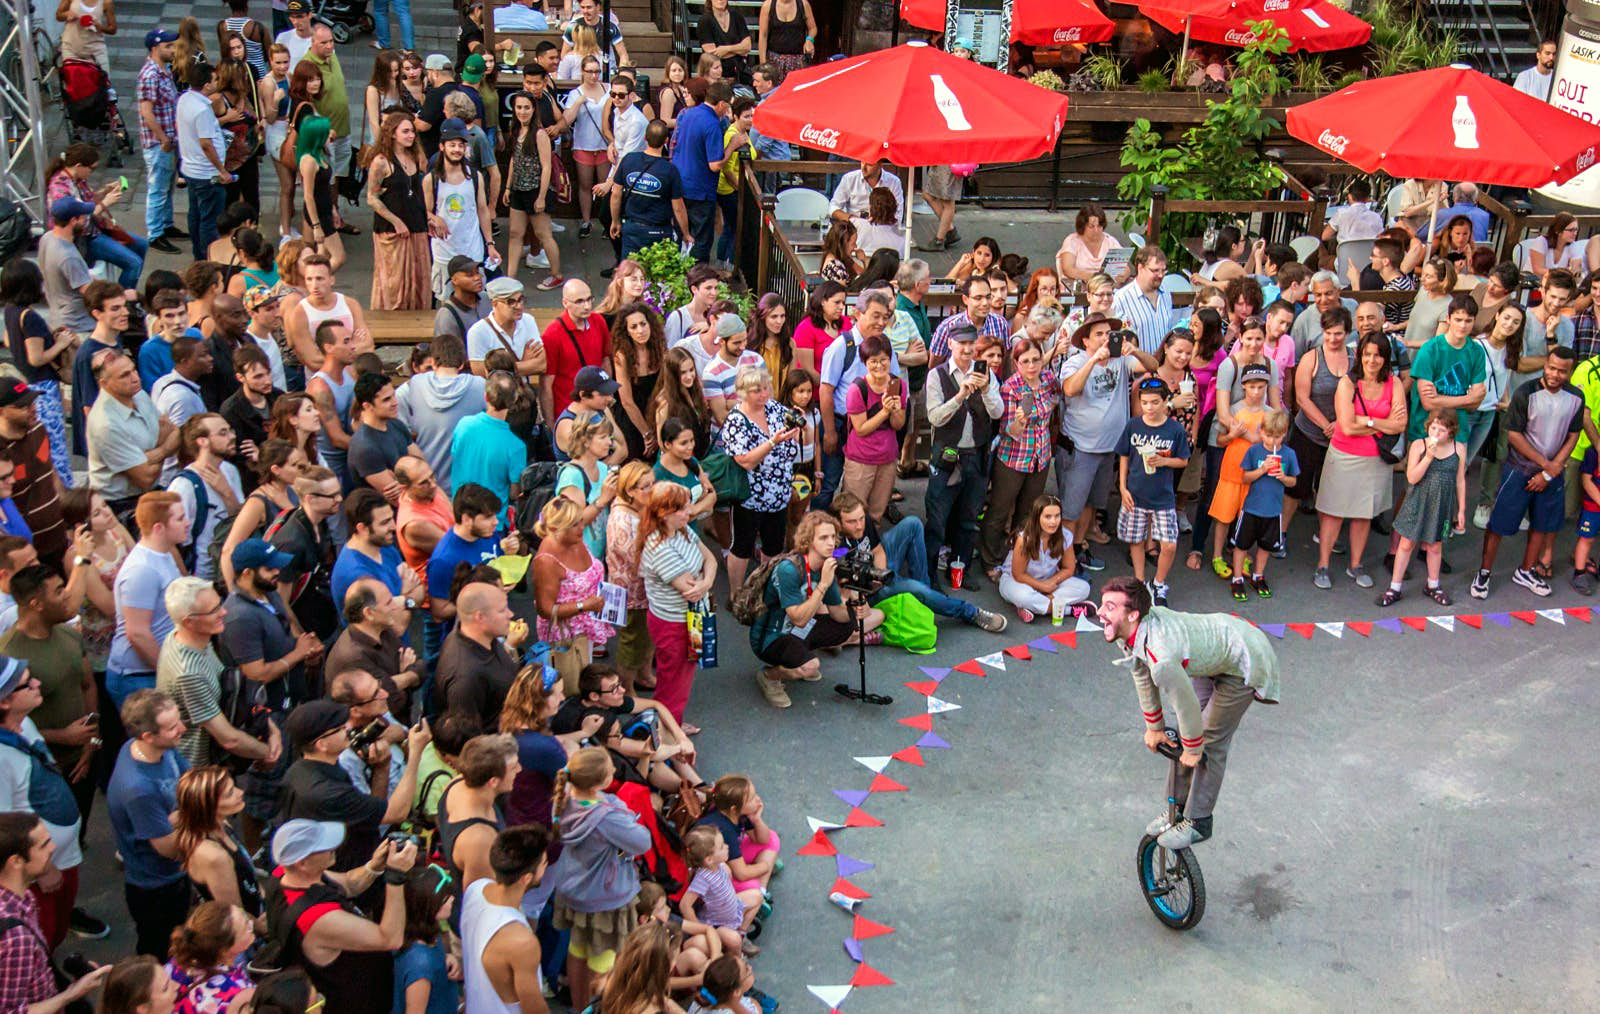 An acrobat stands on a unicycle in a funny pose as a crowd of spectators surround him, sitting on the ground